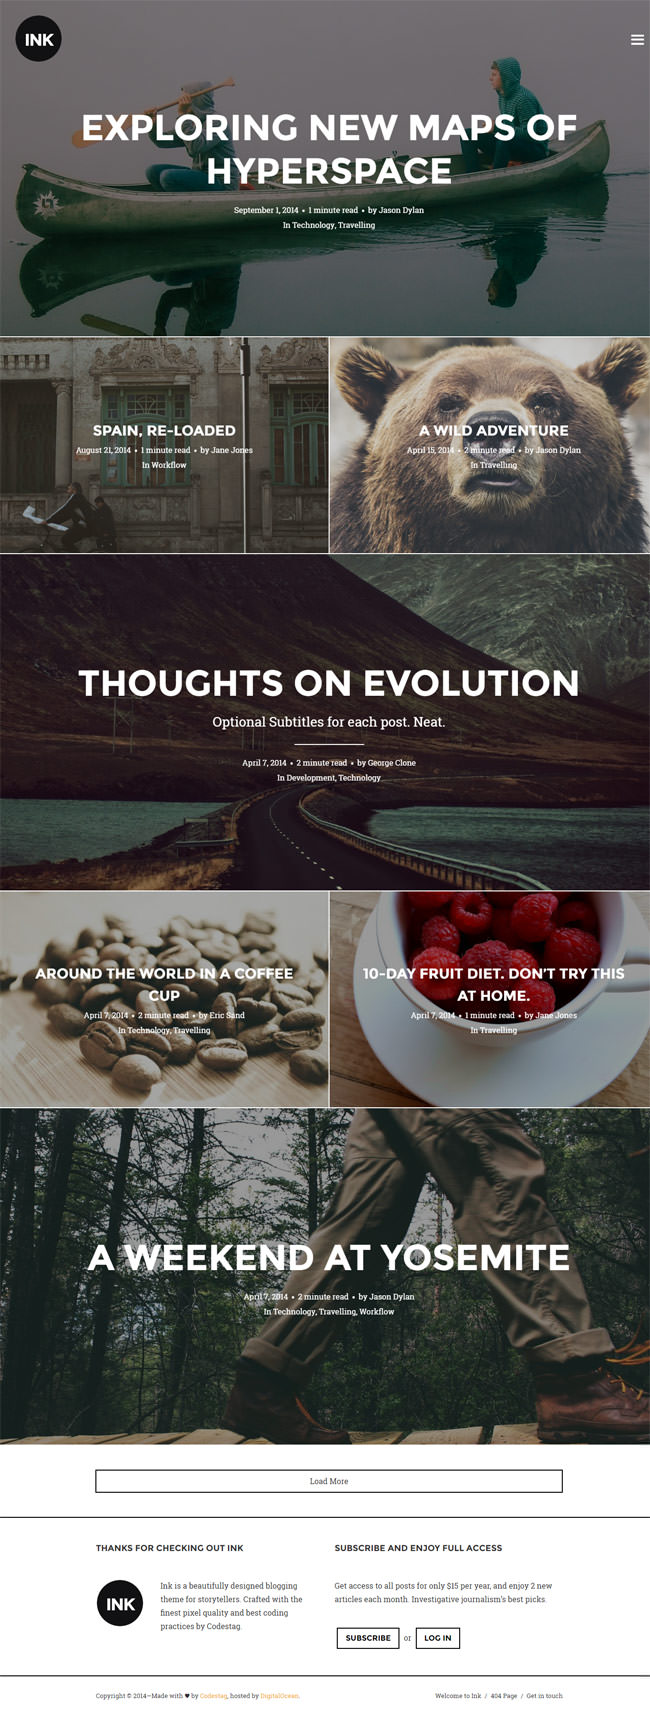 Ink-A-Responsive-WordPress-Blogging-theme-to-tell-Stories